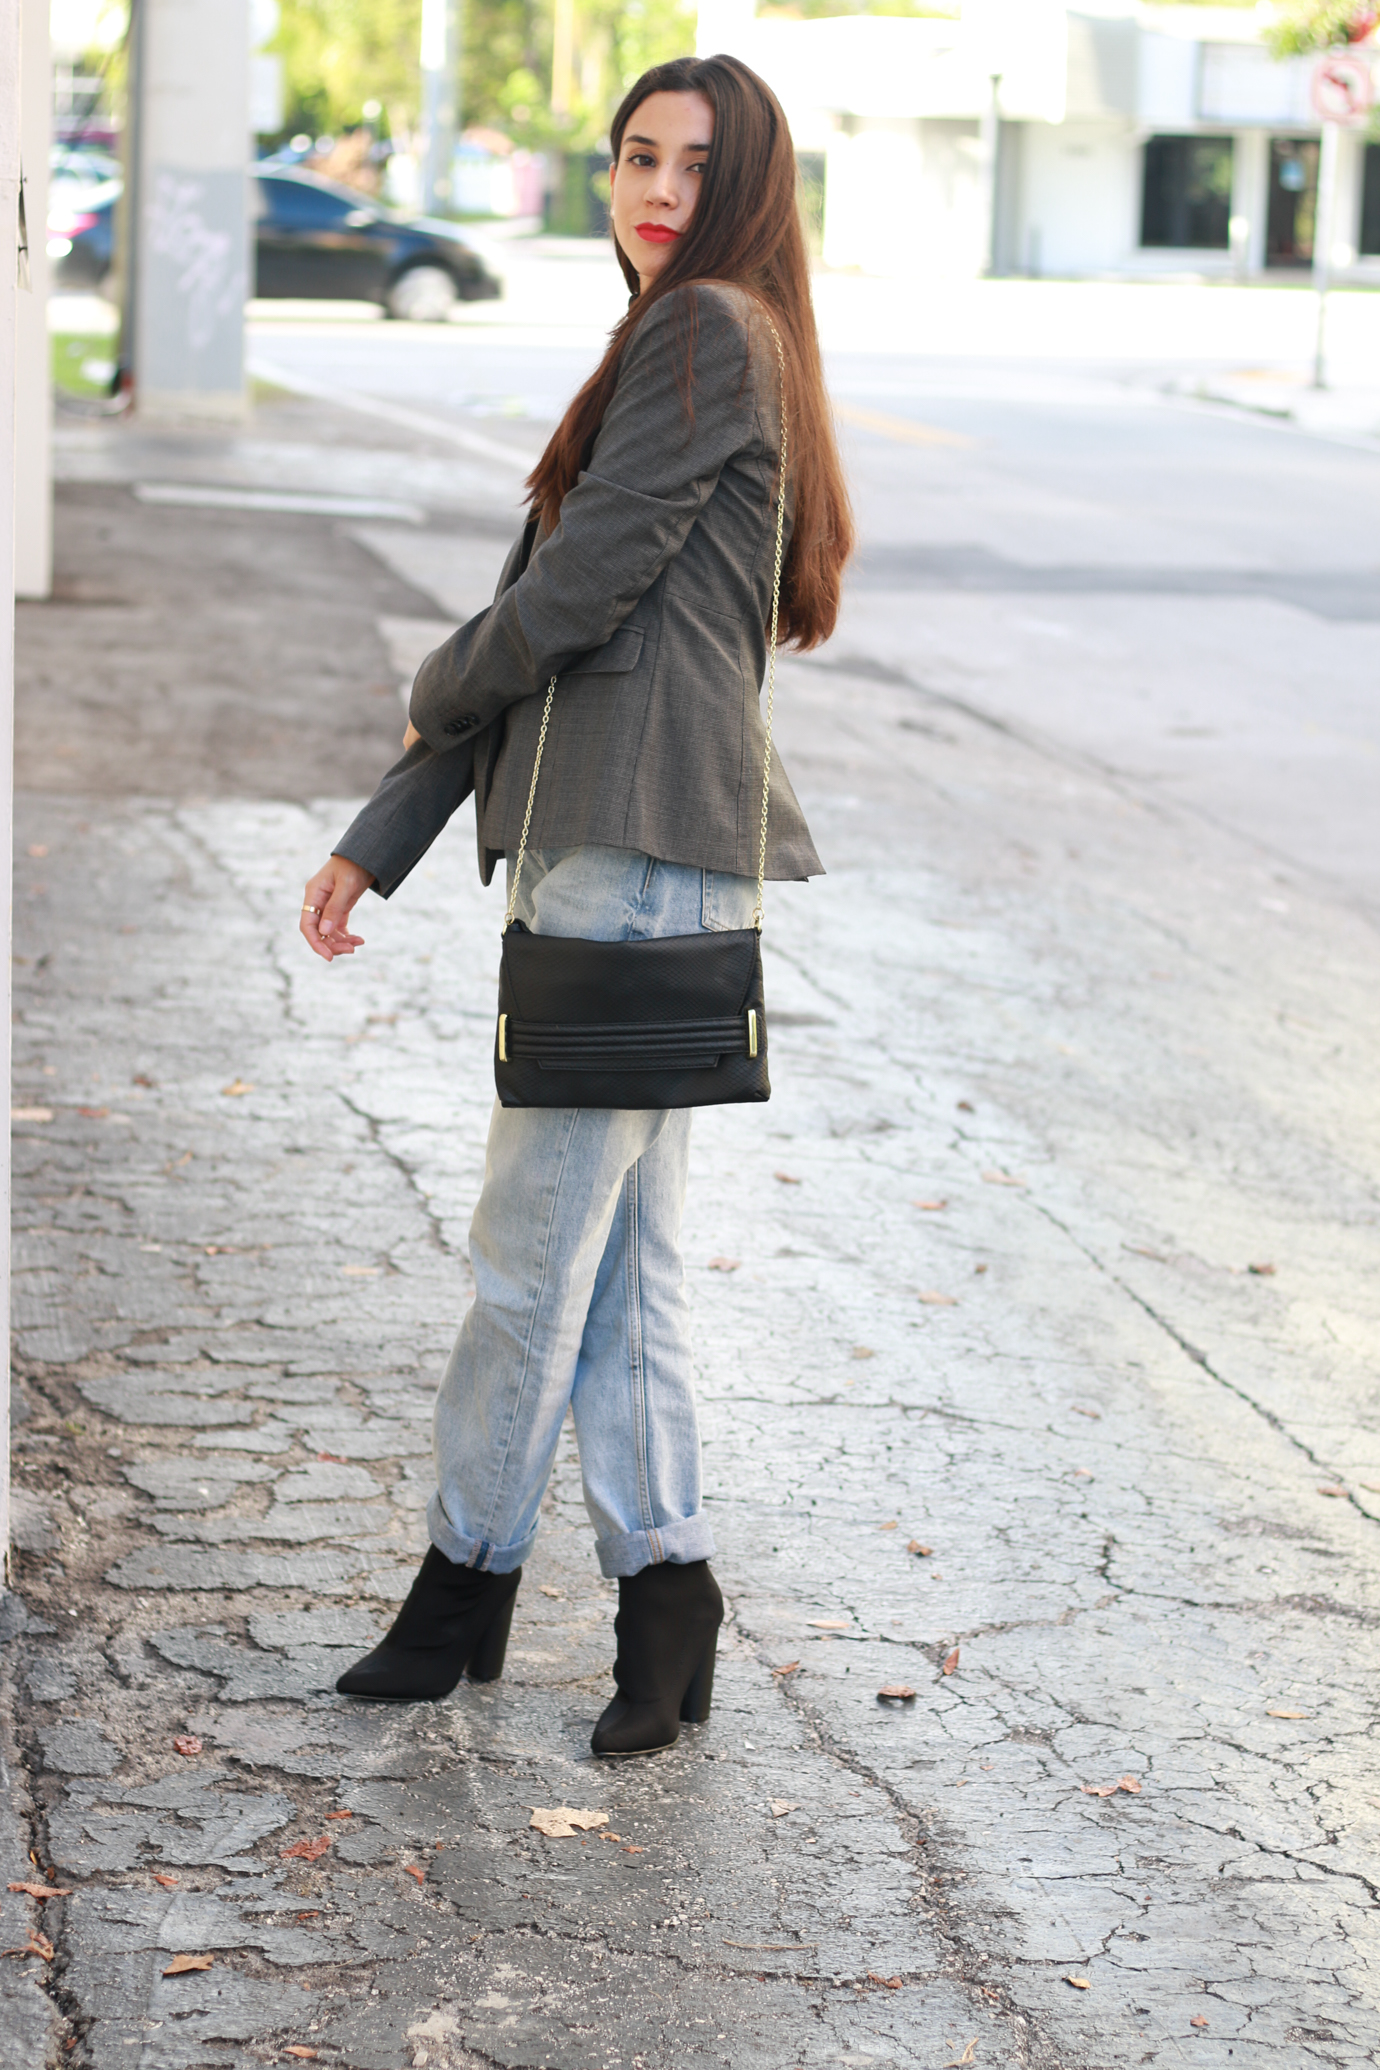 the-blazer-look-fall-trends-3